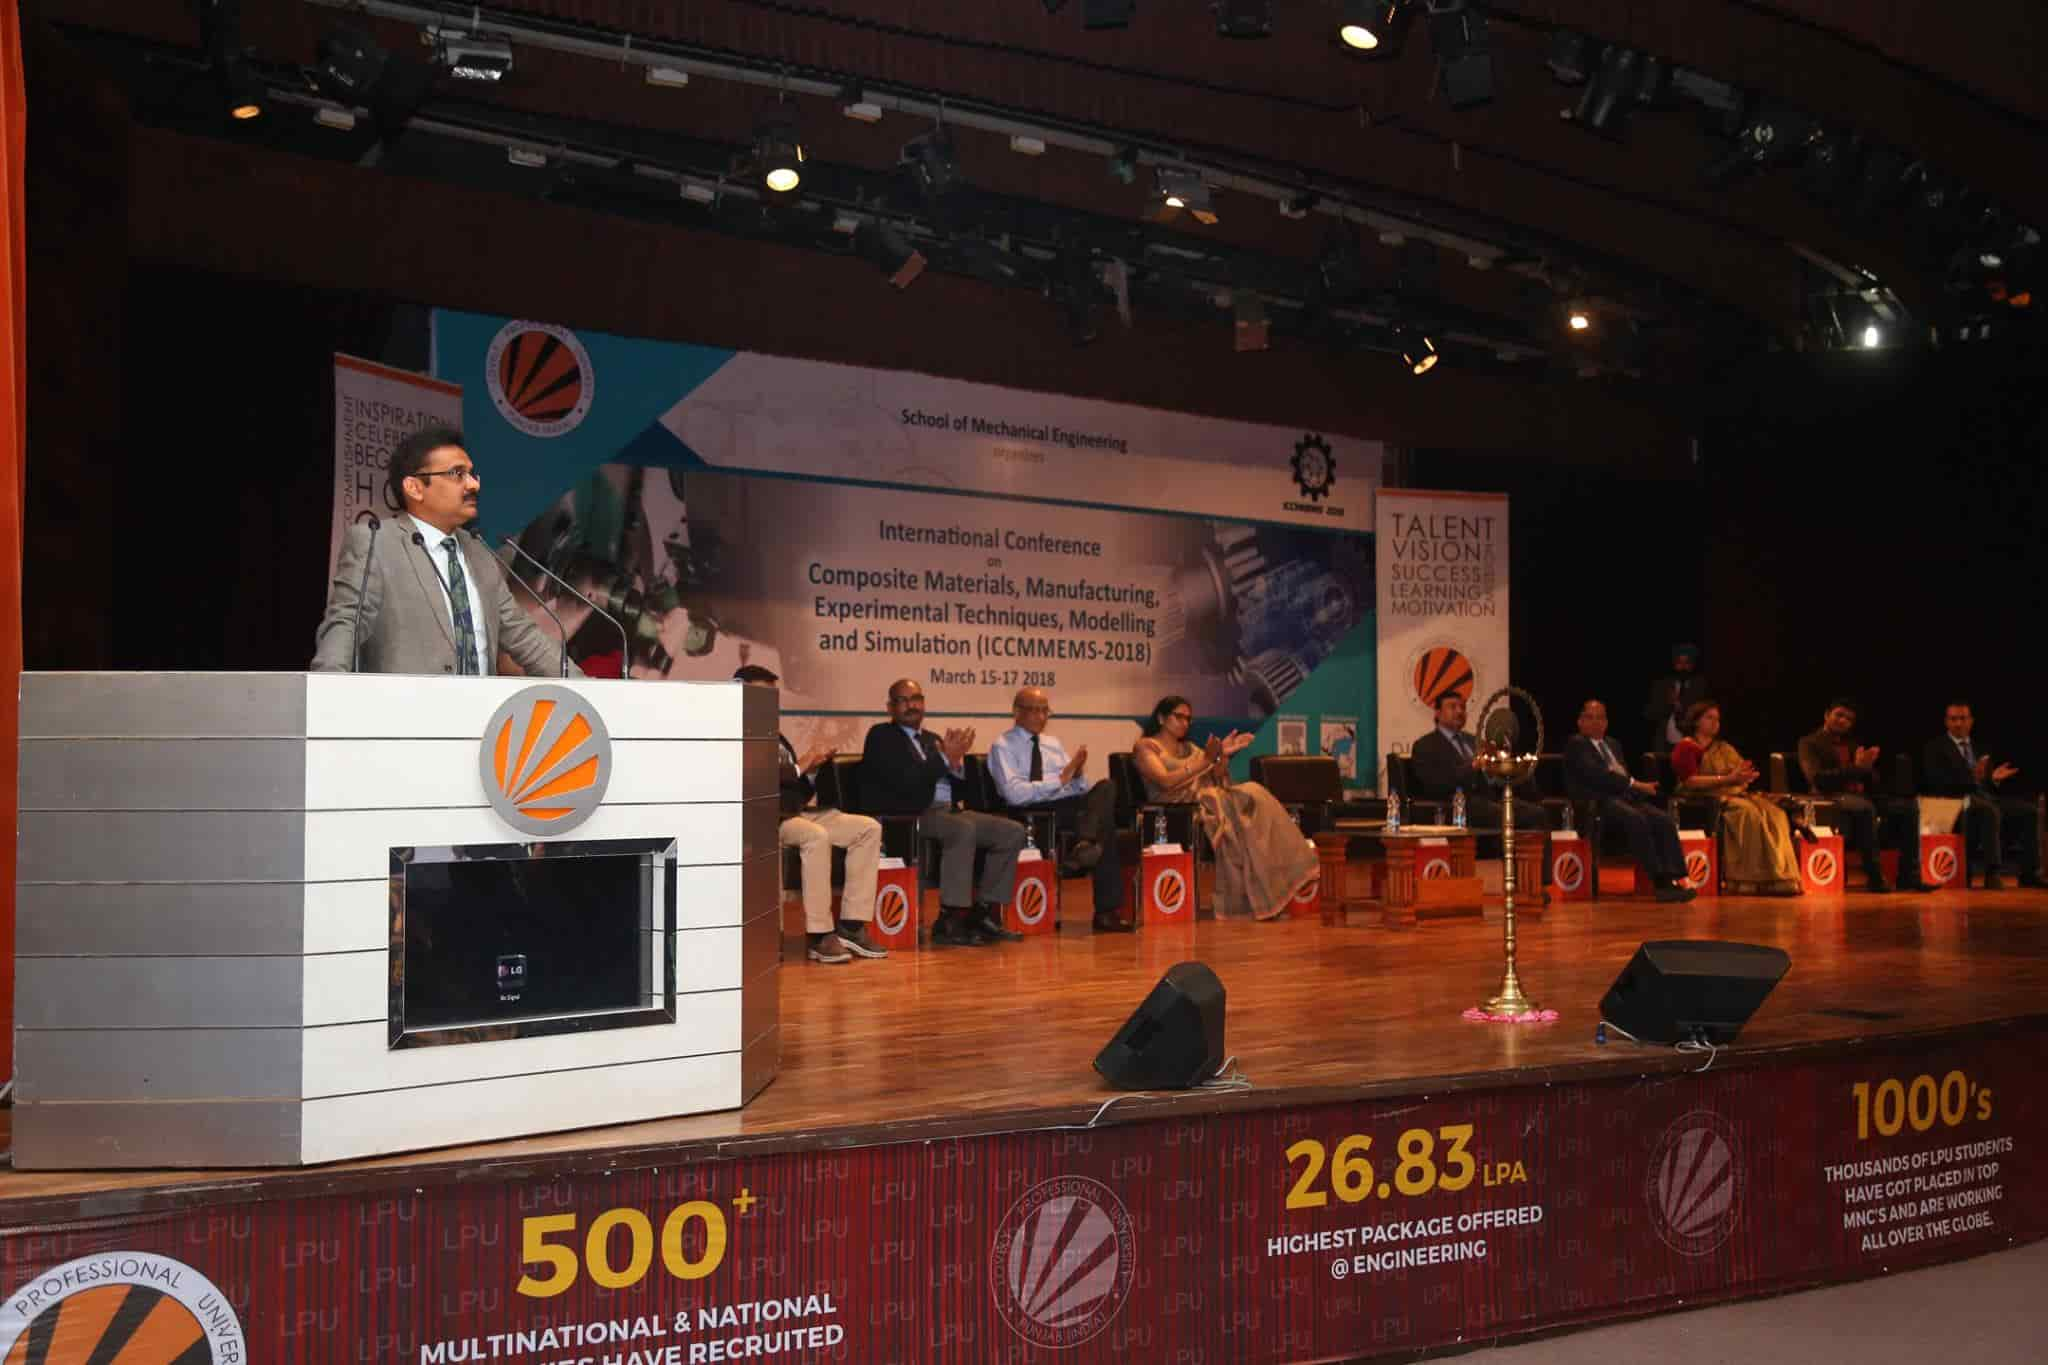 International Conference on Composite Materials at LPU